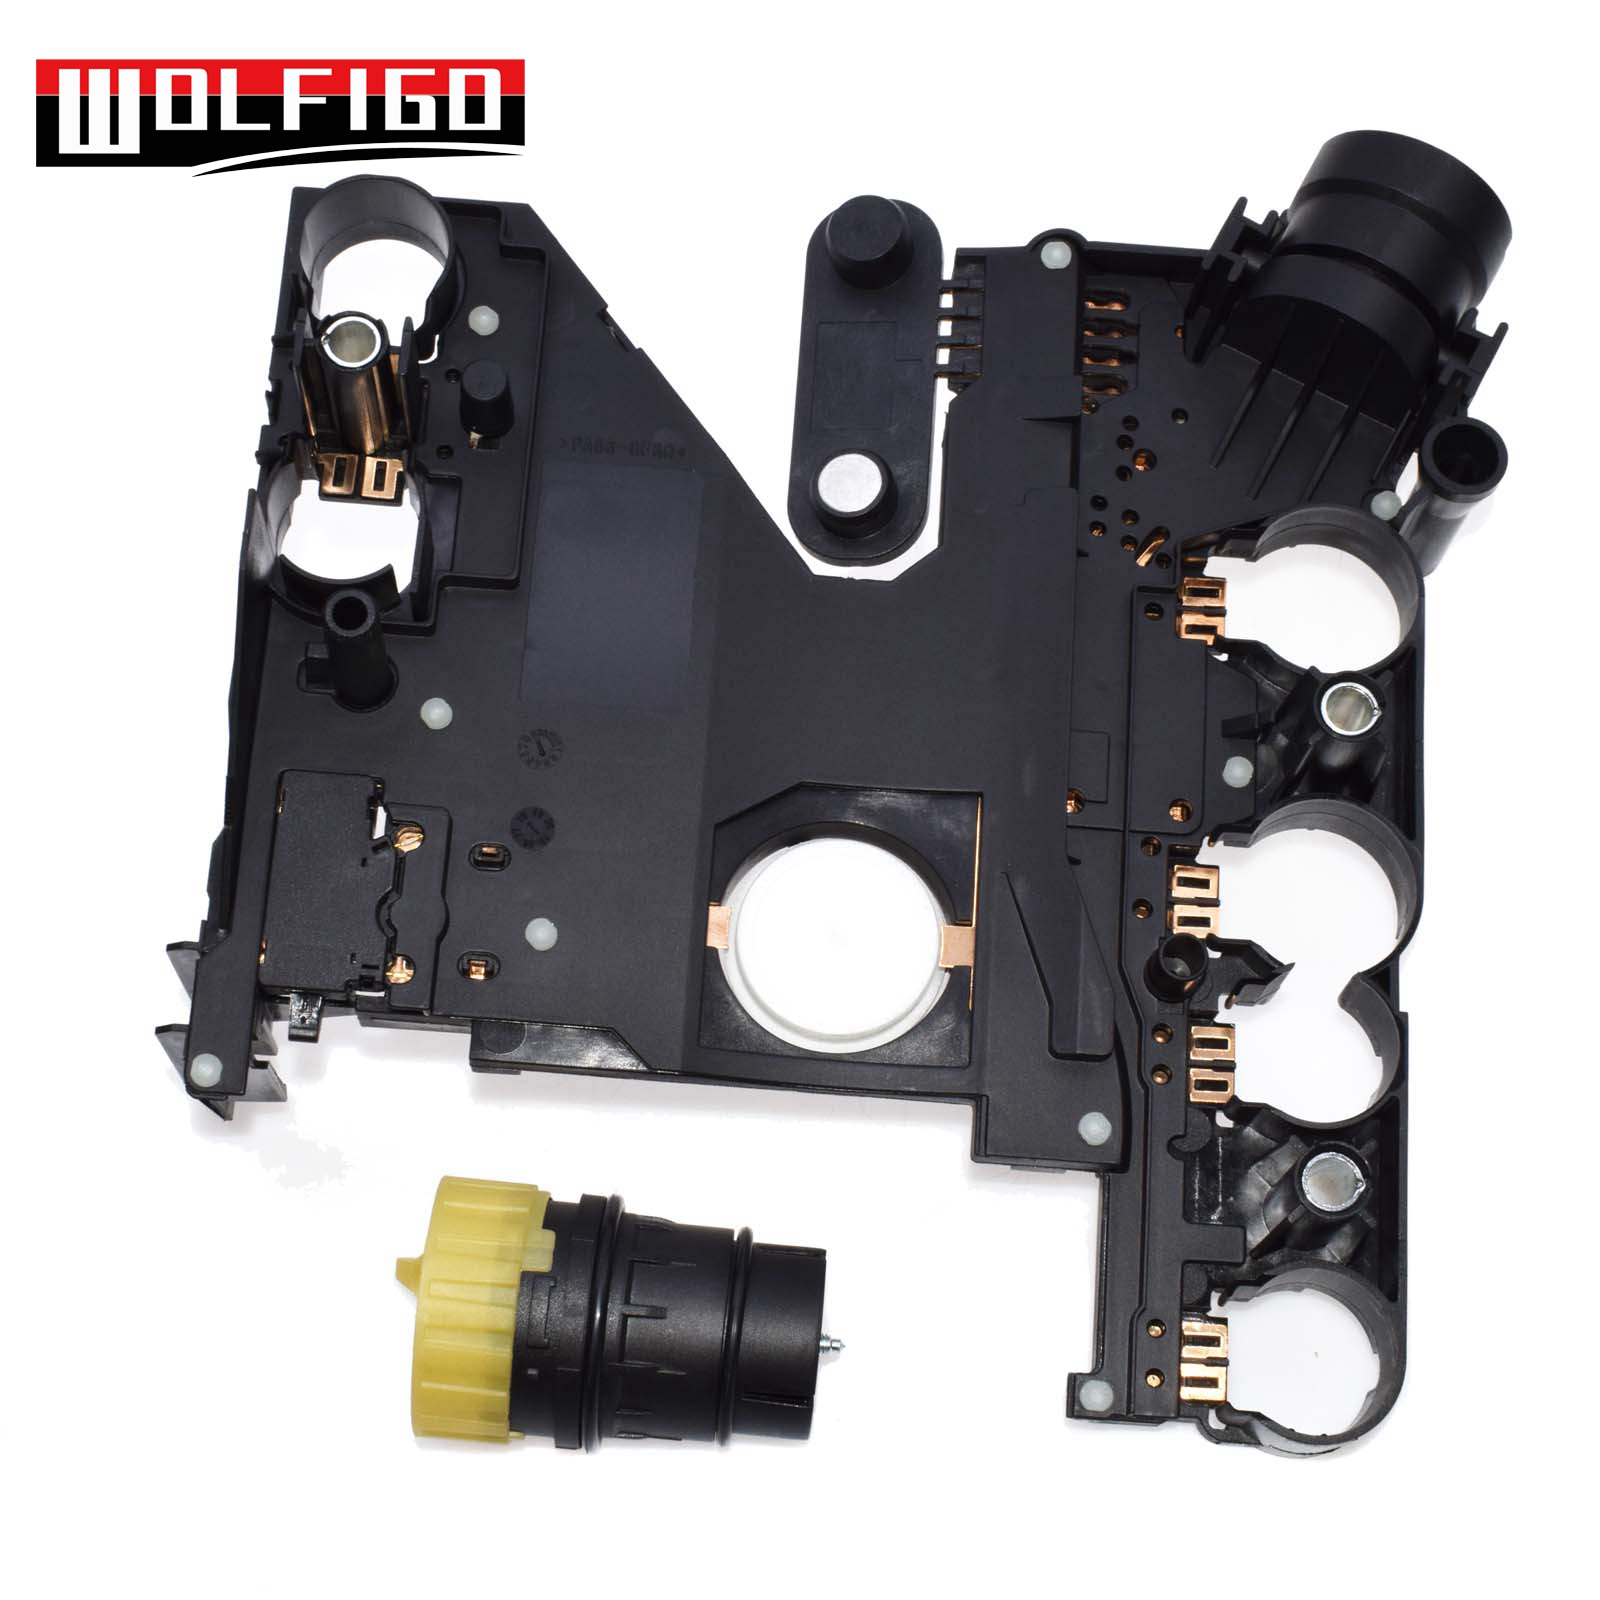 WOLFIGO 1 PC / 2PCS New Transmission Conductor Plate With or Without Wiring Connector For Benz 2035400253,1402700250,1402701161WOLFIGO 1 PC / 2PCS New Transmission Conductor Plate With or Without Wiring Connector For Benz 2035400253,1402700250,1402701161